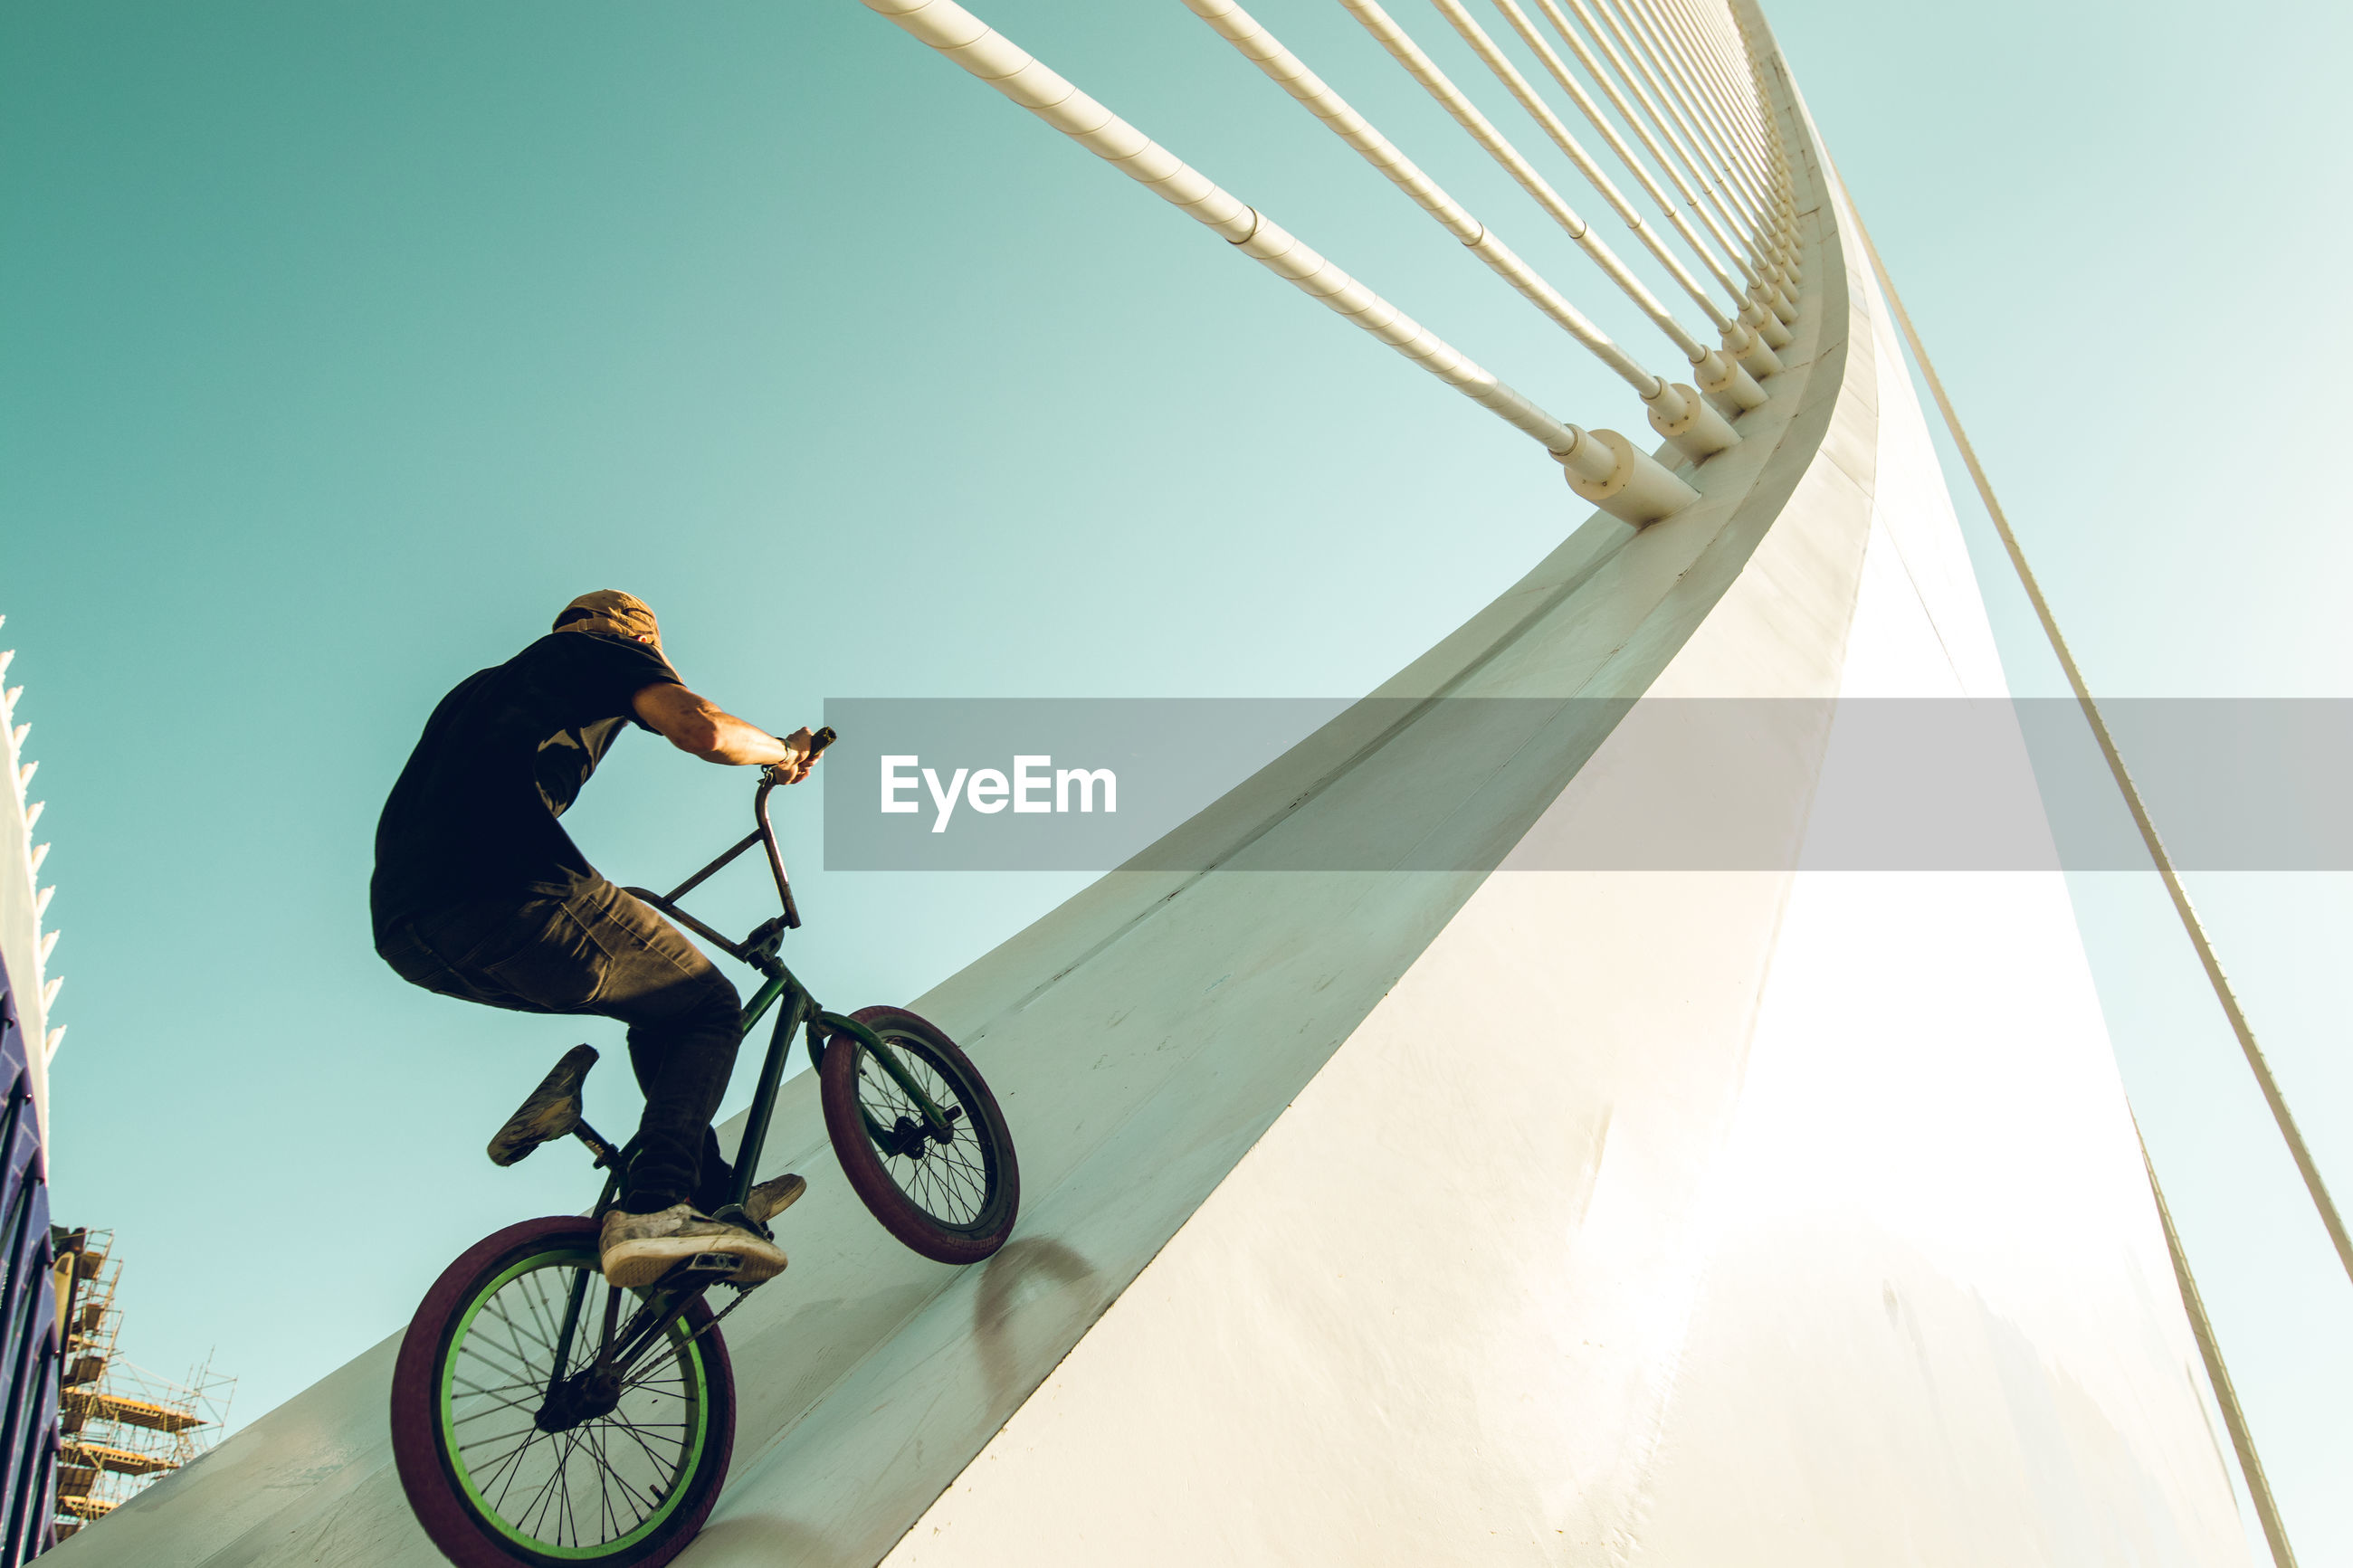 Low angle view of man riding bicycle on built structure against sky